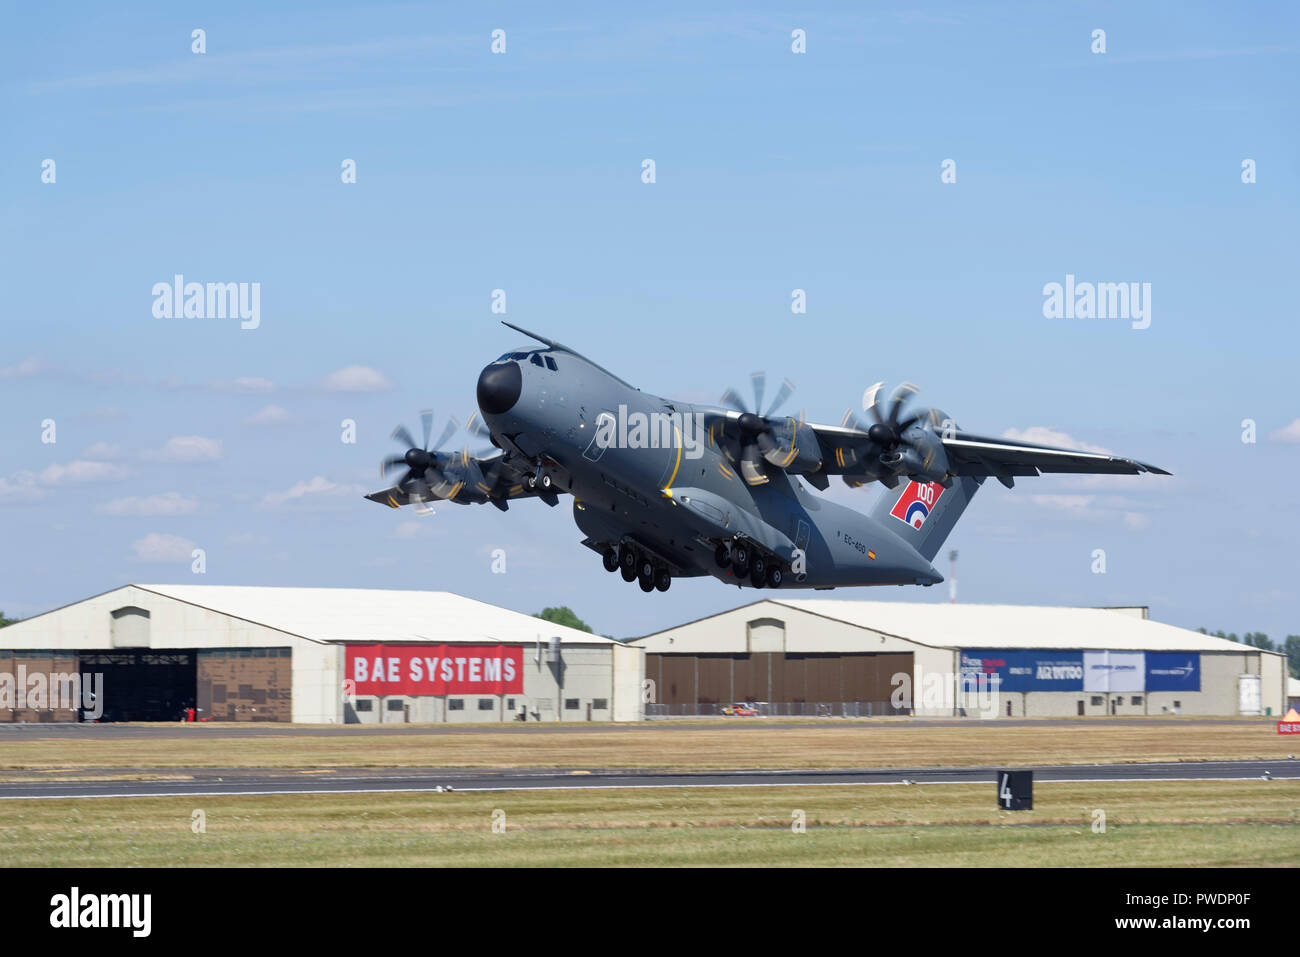 Airbus Defence and Space A400M Atlas Tactical Airlifter takes off to demonstrate at the Royal International Air Tattoo. - Stock Image